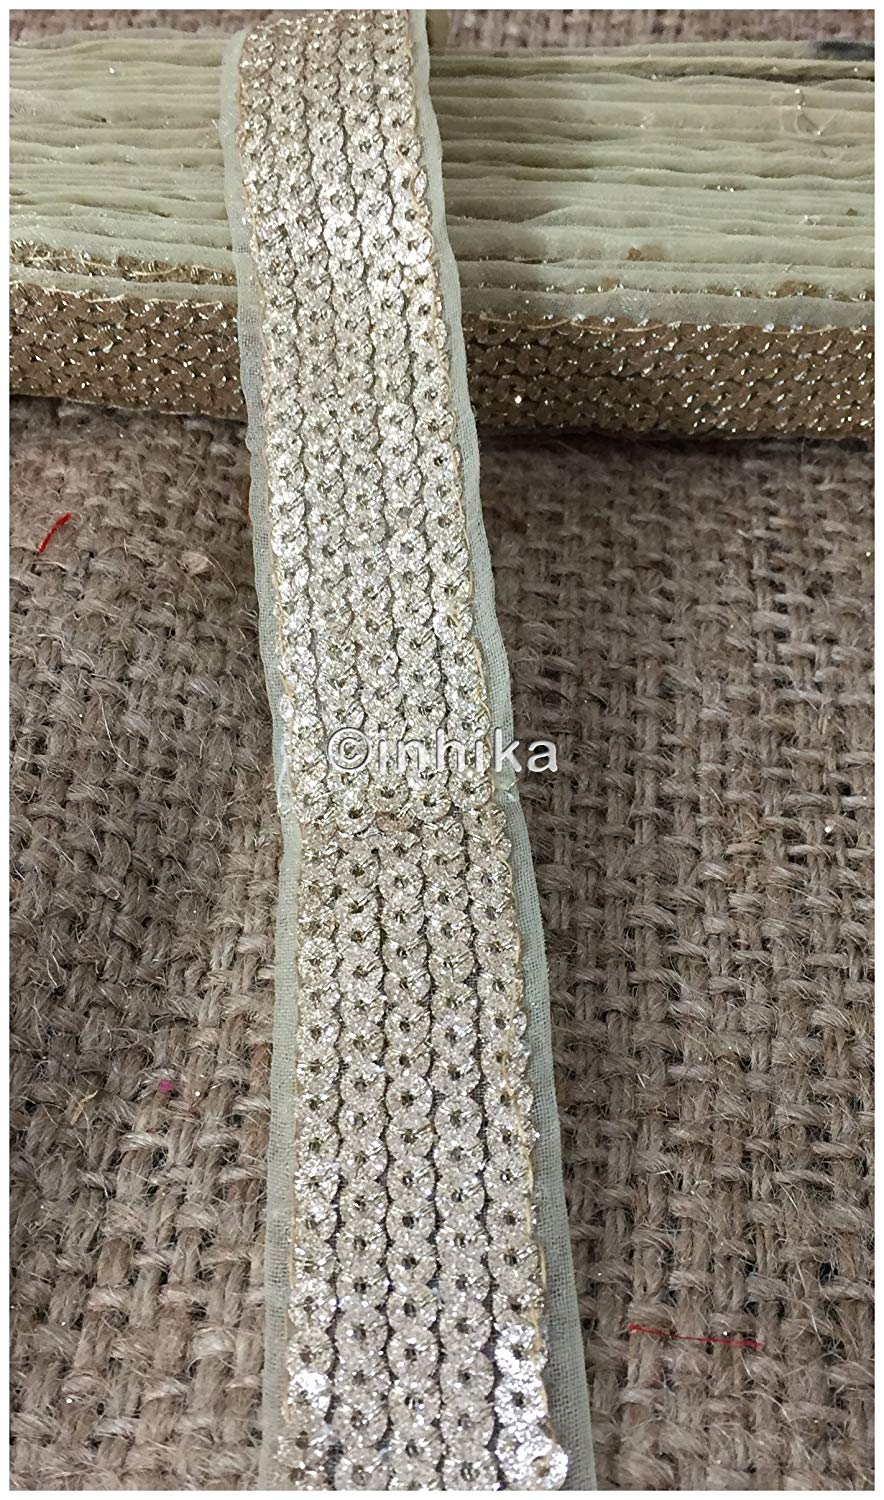 Dull Gold Shiny Sequin Trim | Tissue Fabric | 1.2 inch wide | 9 Meter Roll - Inhika.com